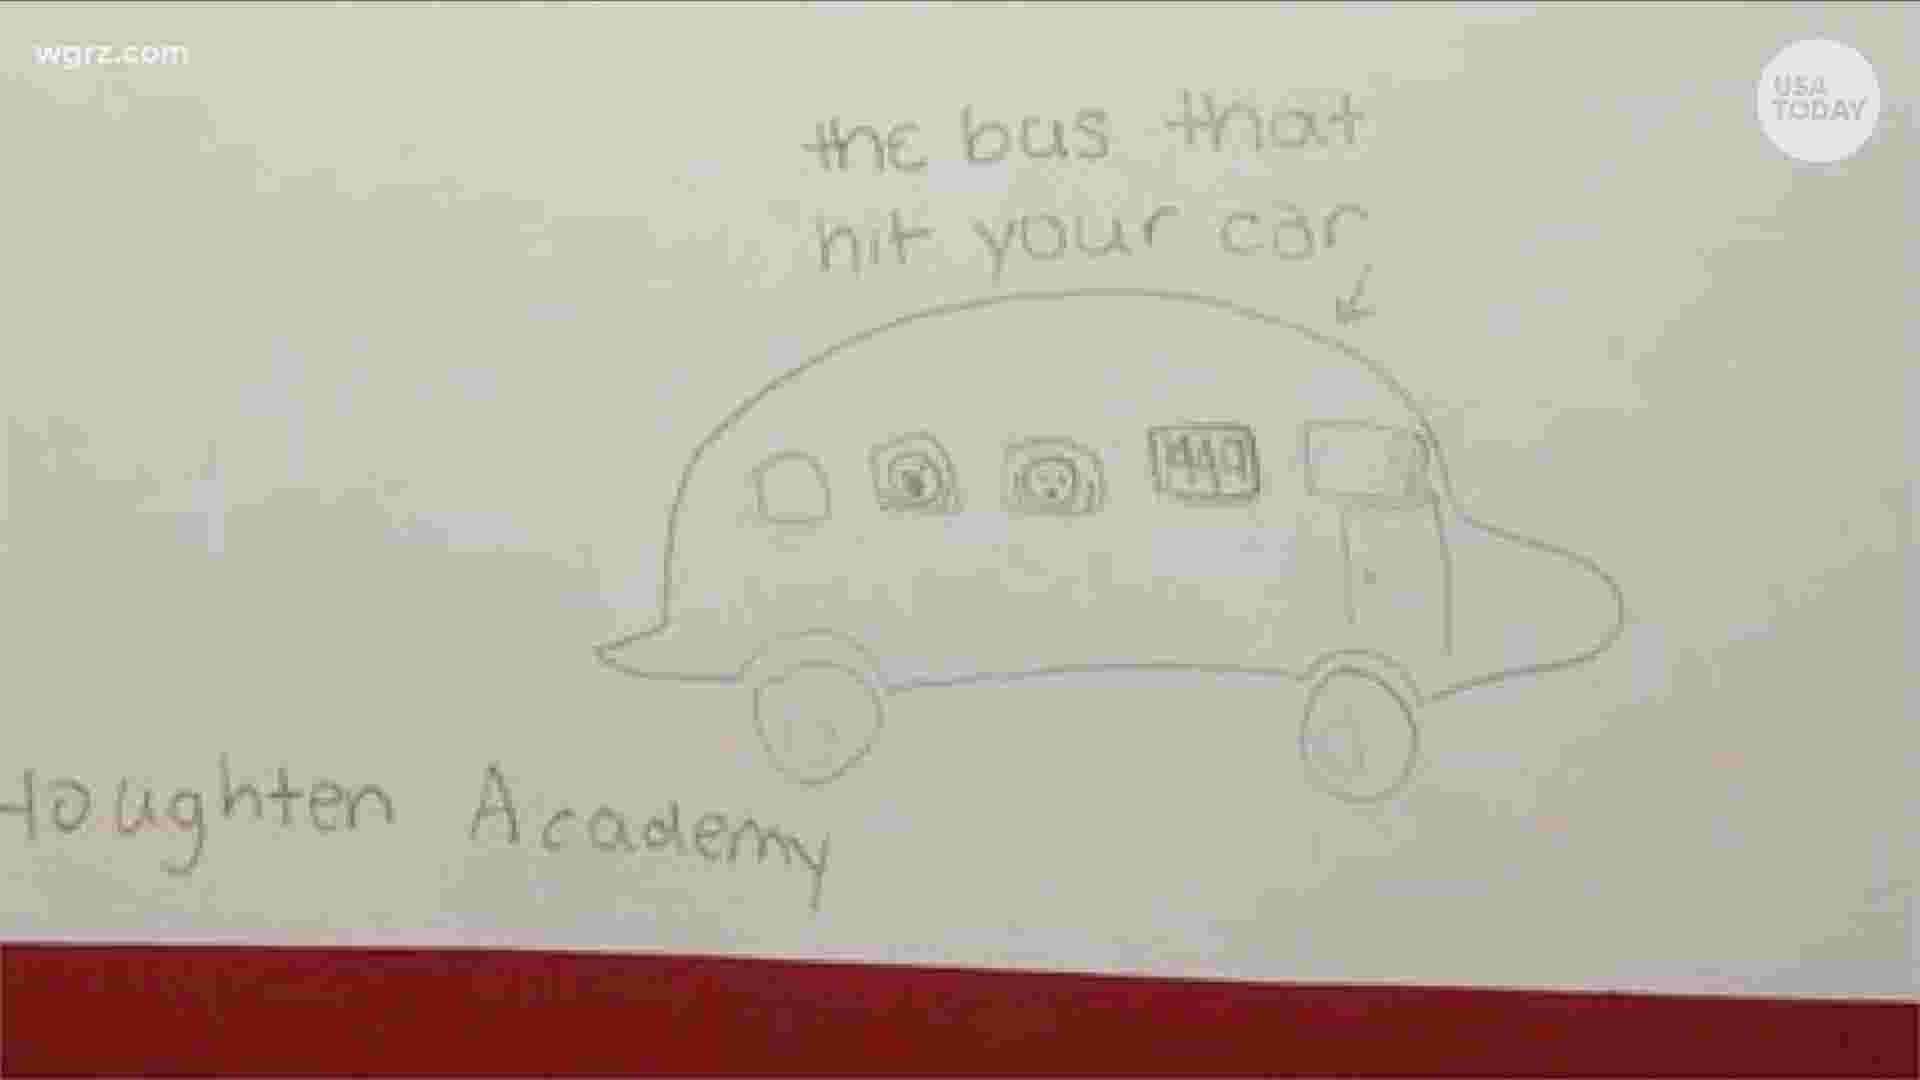 6th Graders Adorable Note Helps Solve A School Bus Hit And Run Viral Tweet Says